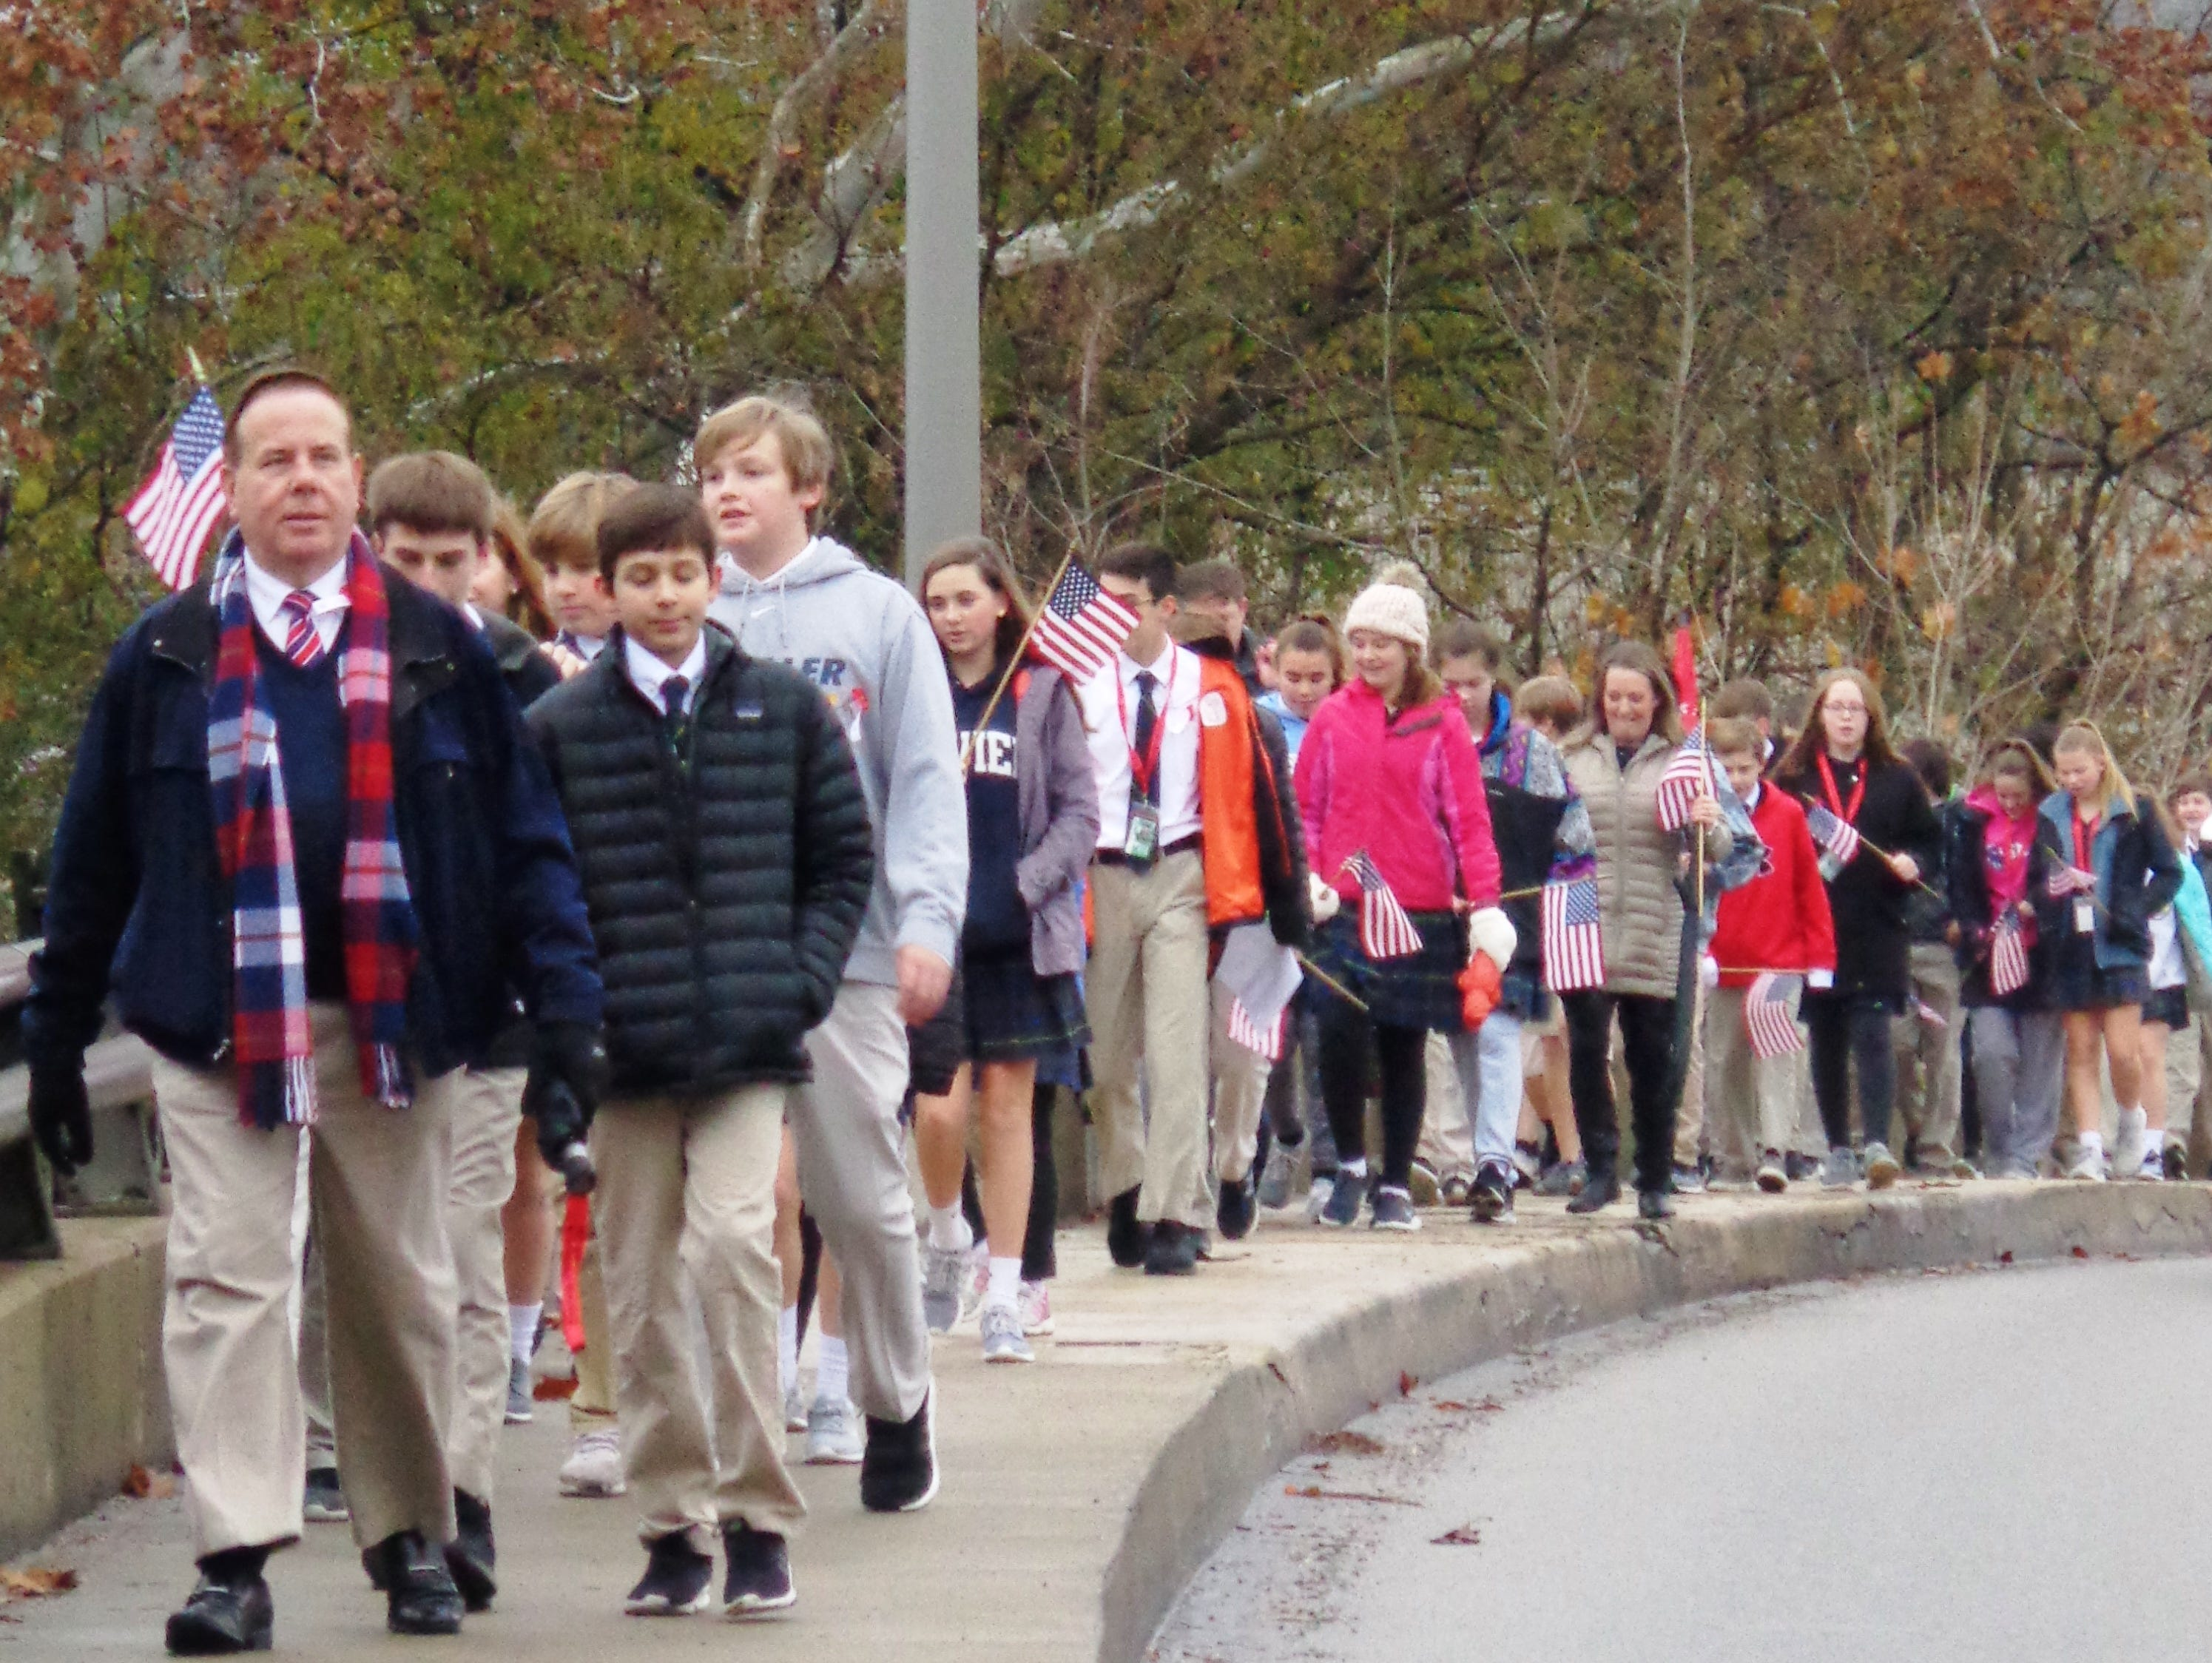 St. Columban School students led by teacher Chad Drinnen parade across the bridge in Loveland on the way to their annual Veterans Day ceremony at Loveland Veteran's Memorial Park.